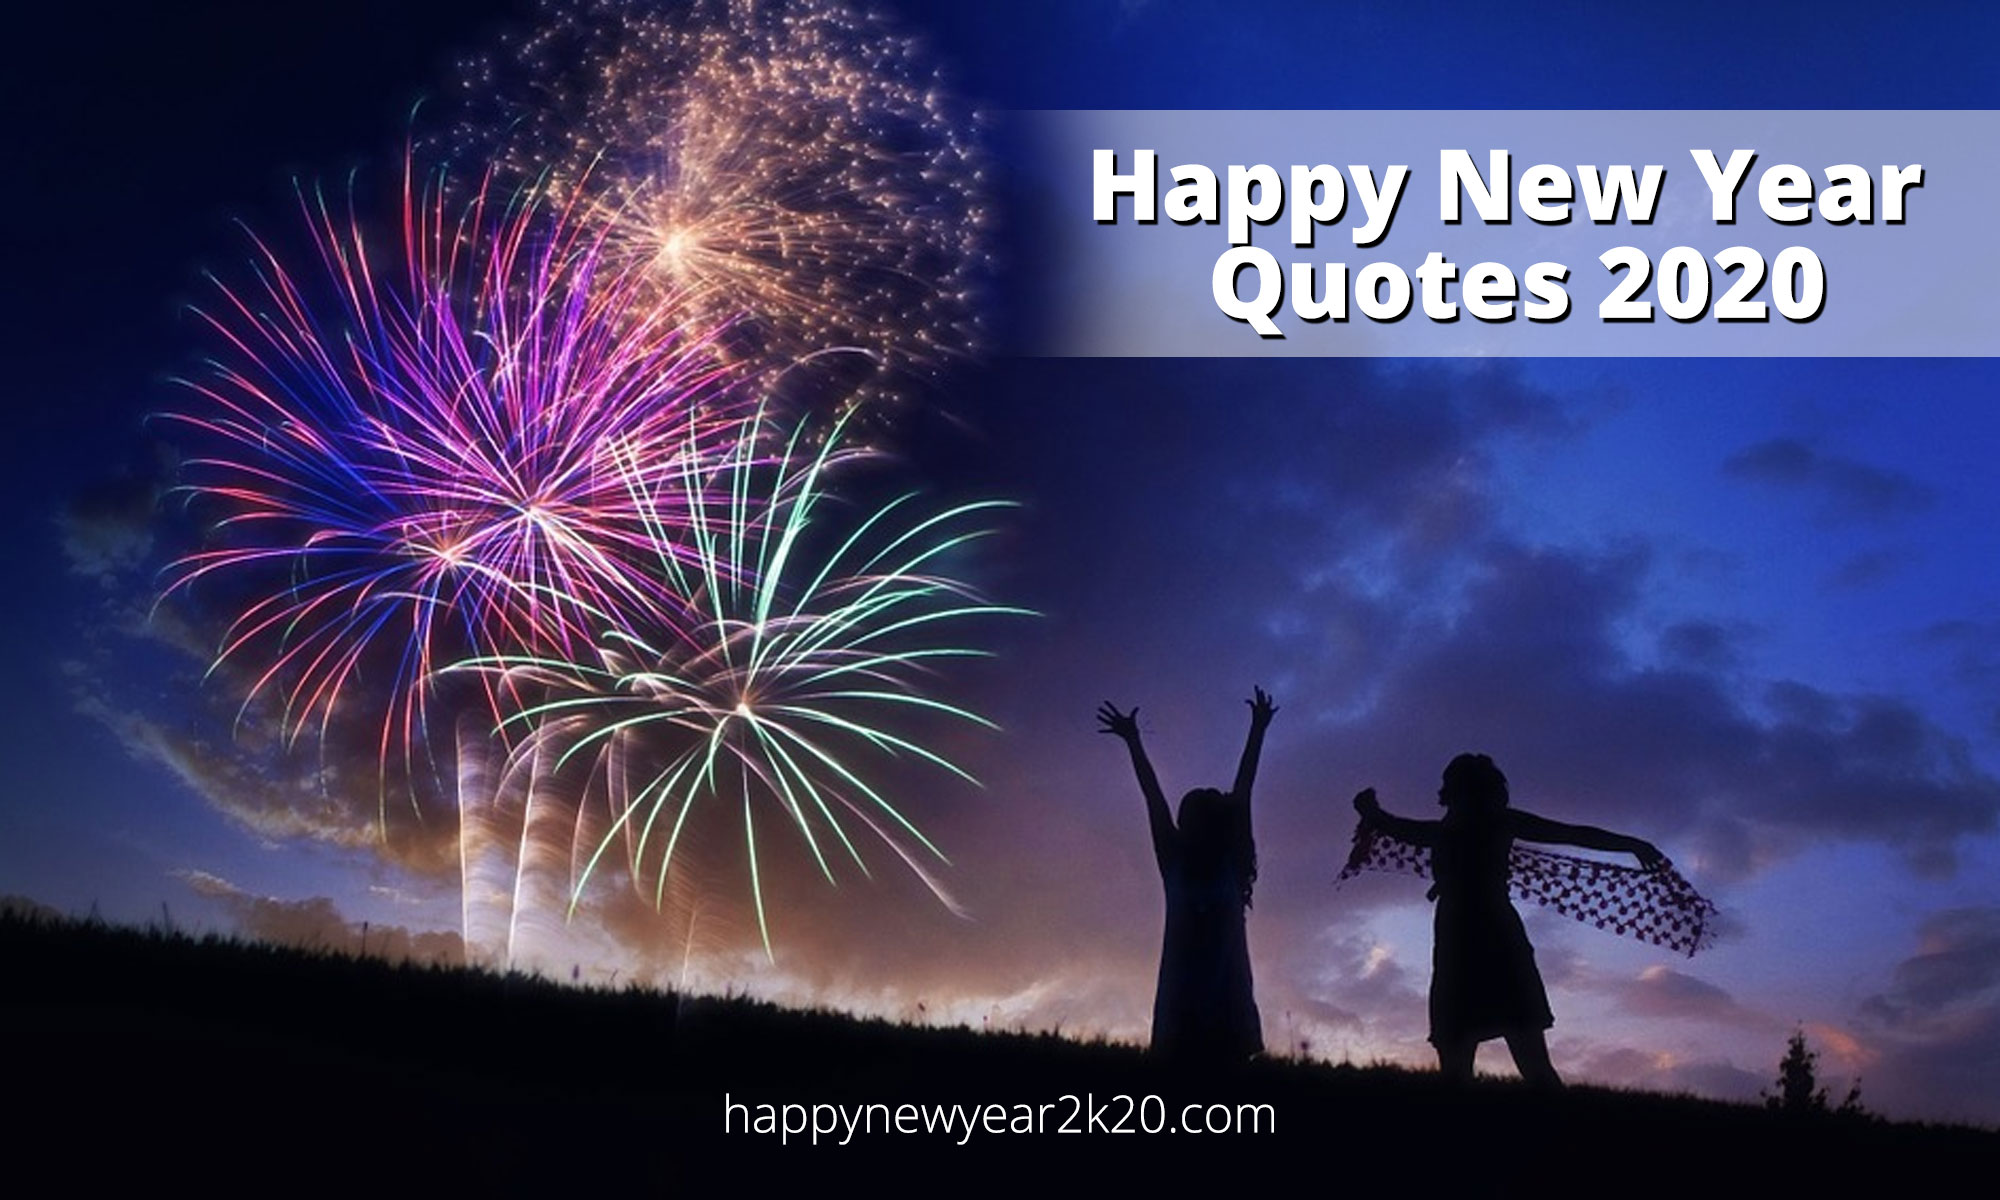 Happy-New-Year-Quotes-2020